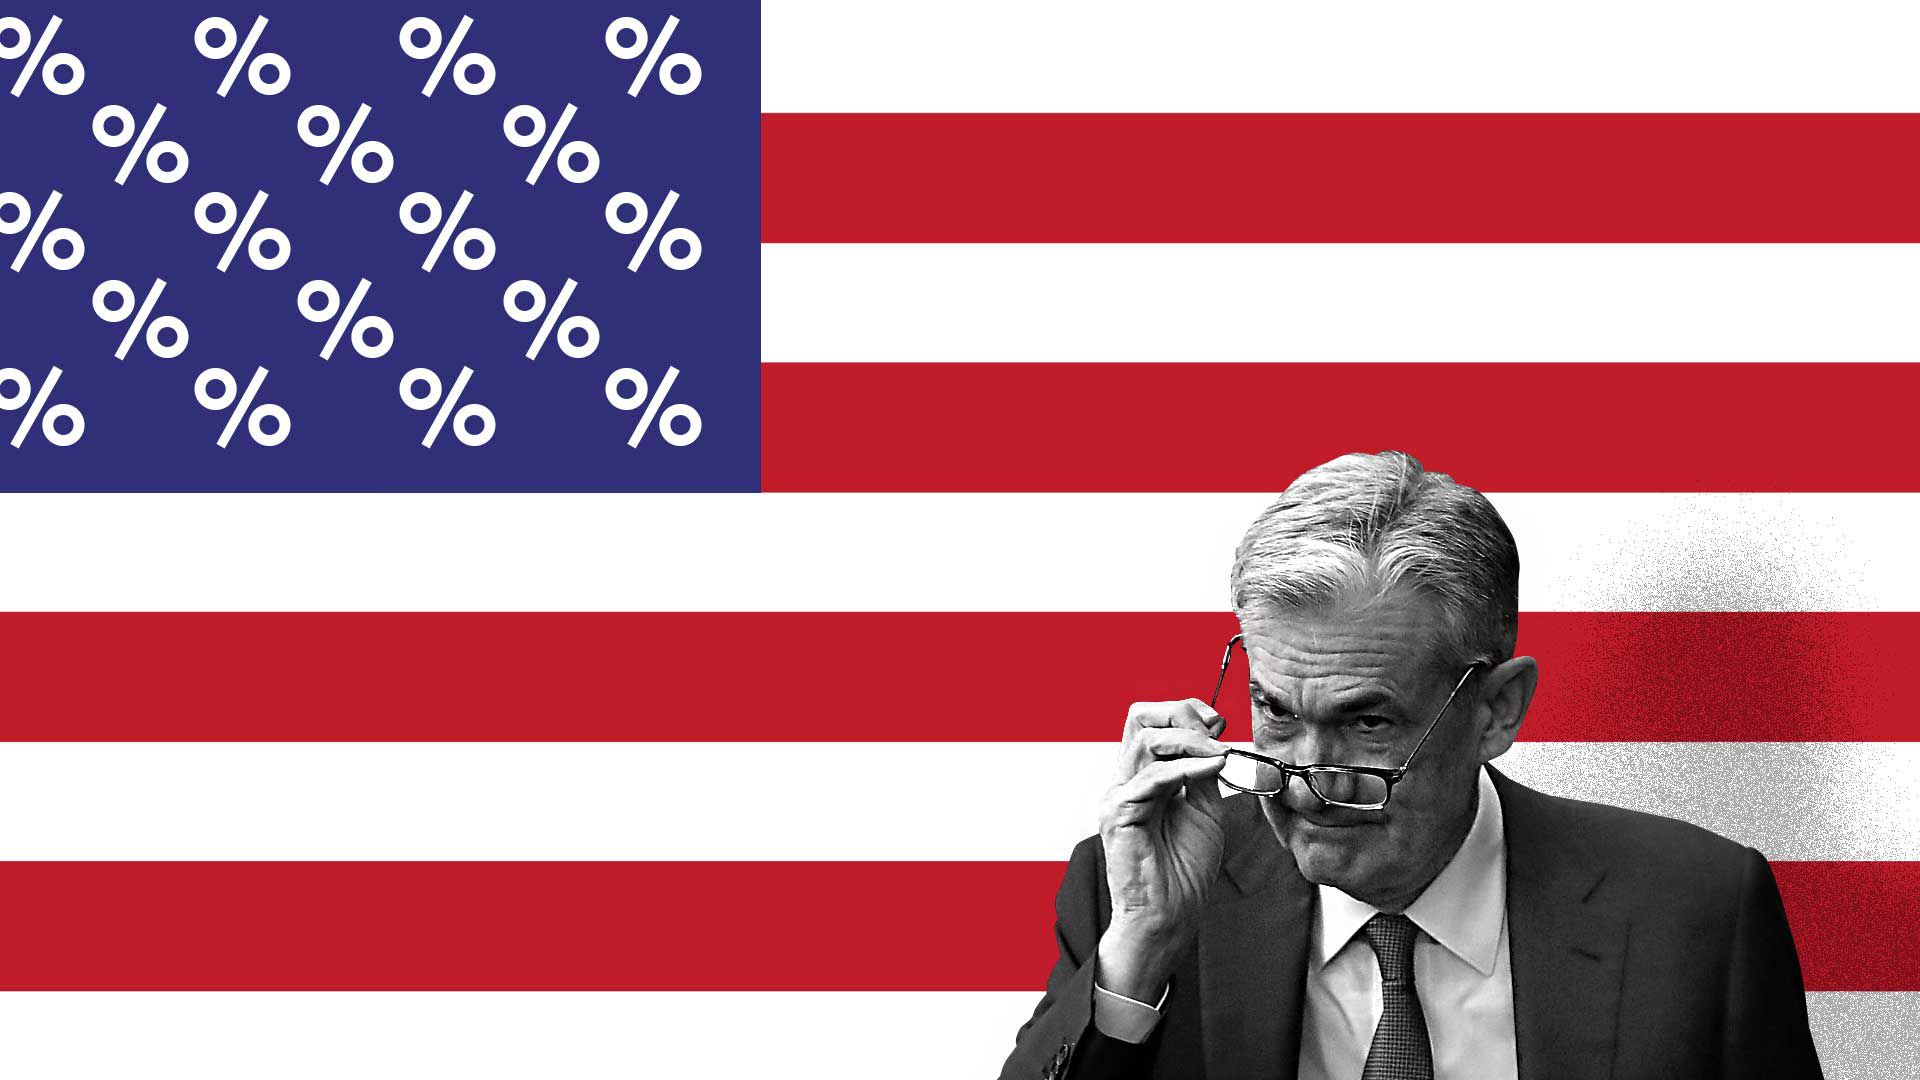 Jay Powell standing in front of a U.S. flag with the stars replaced by percent signs